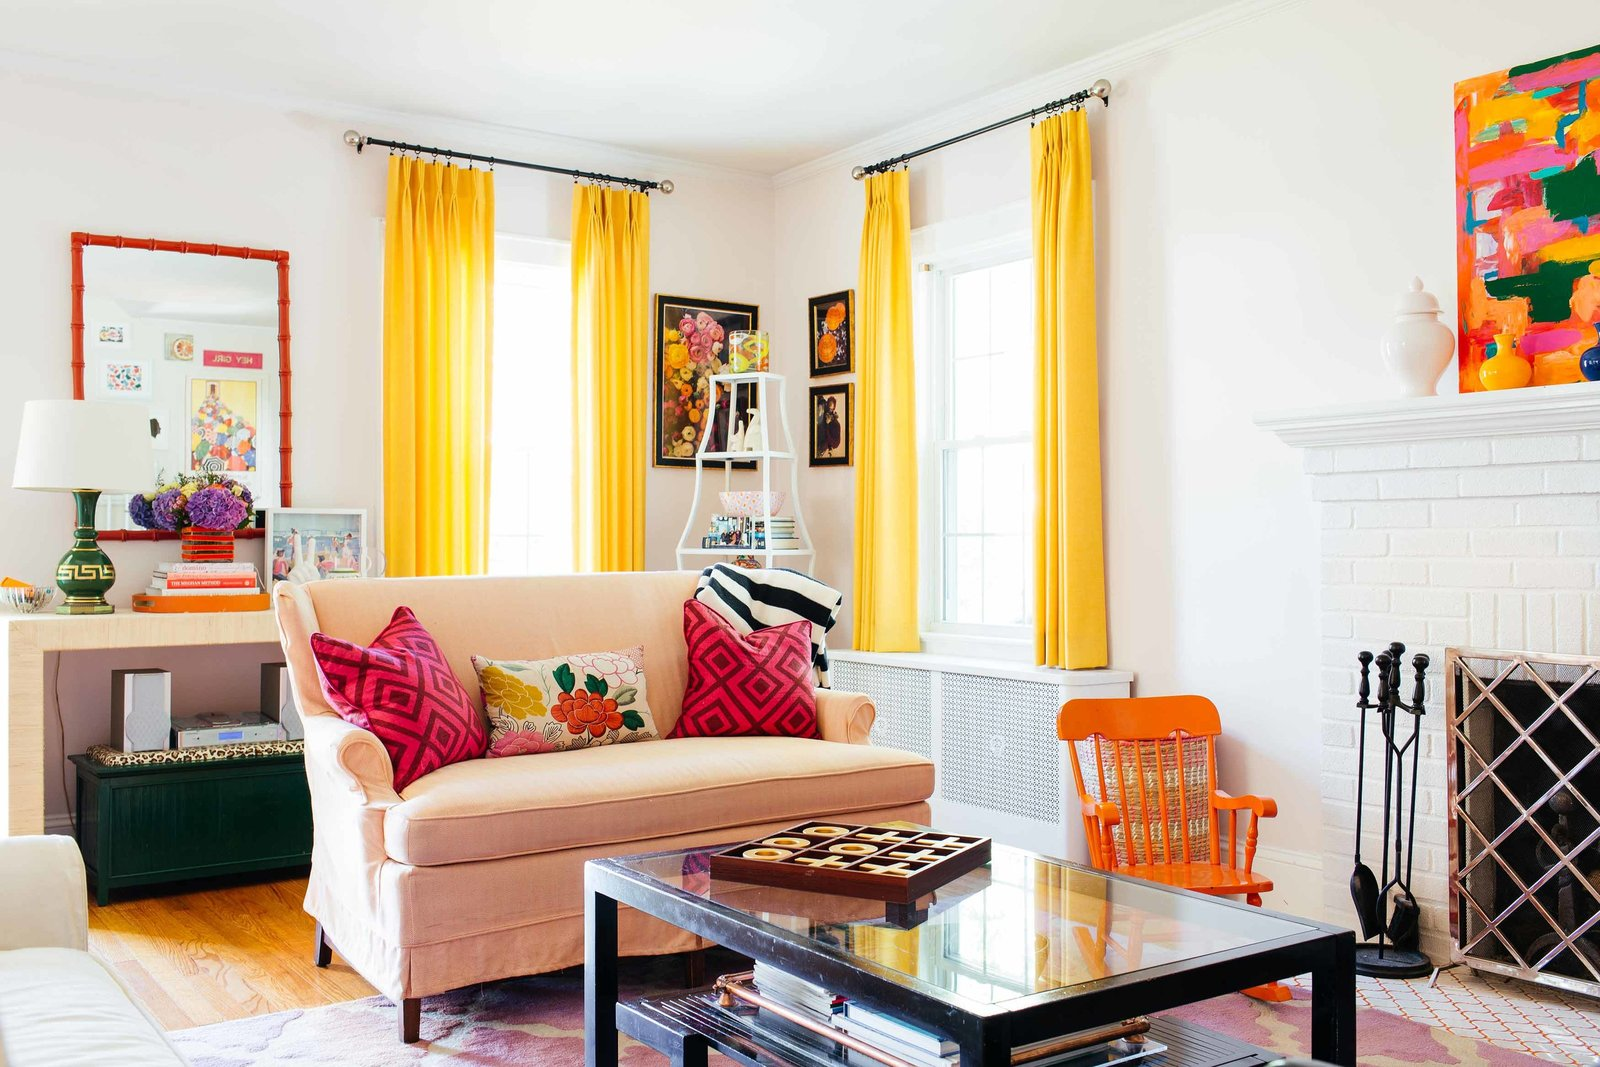 A peach love seat in a colorful living room.